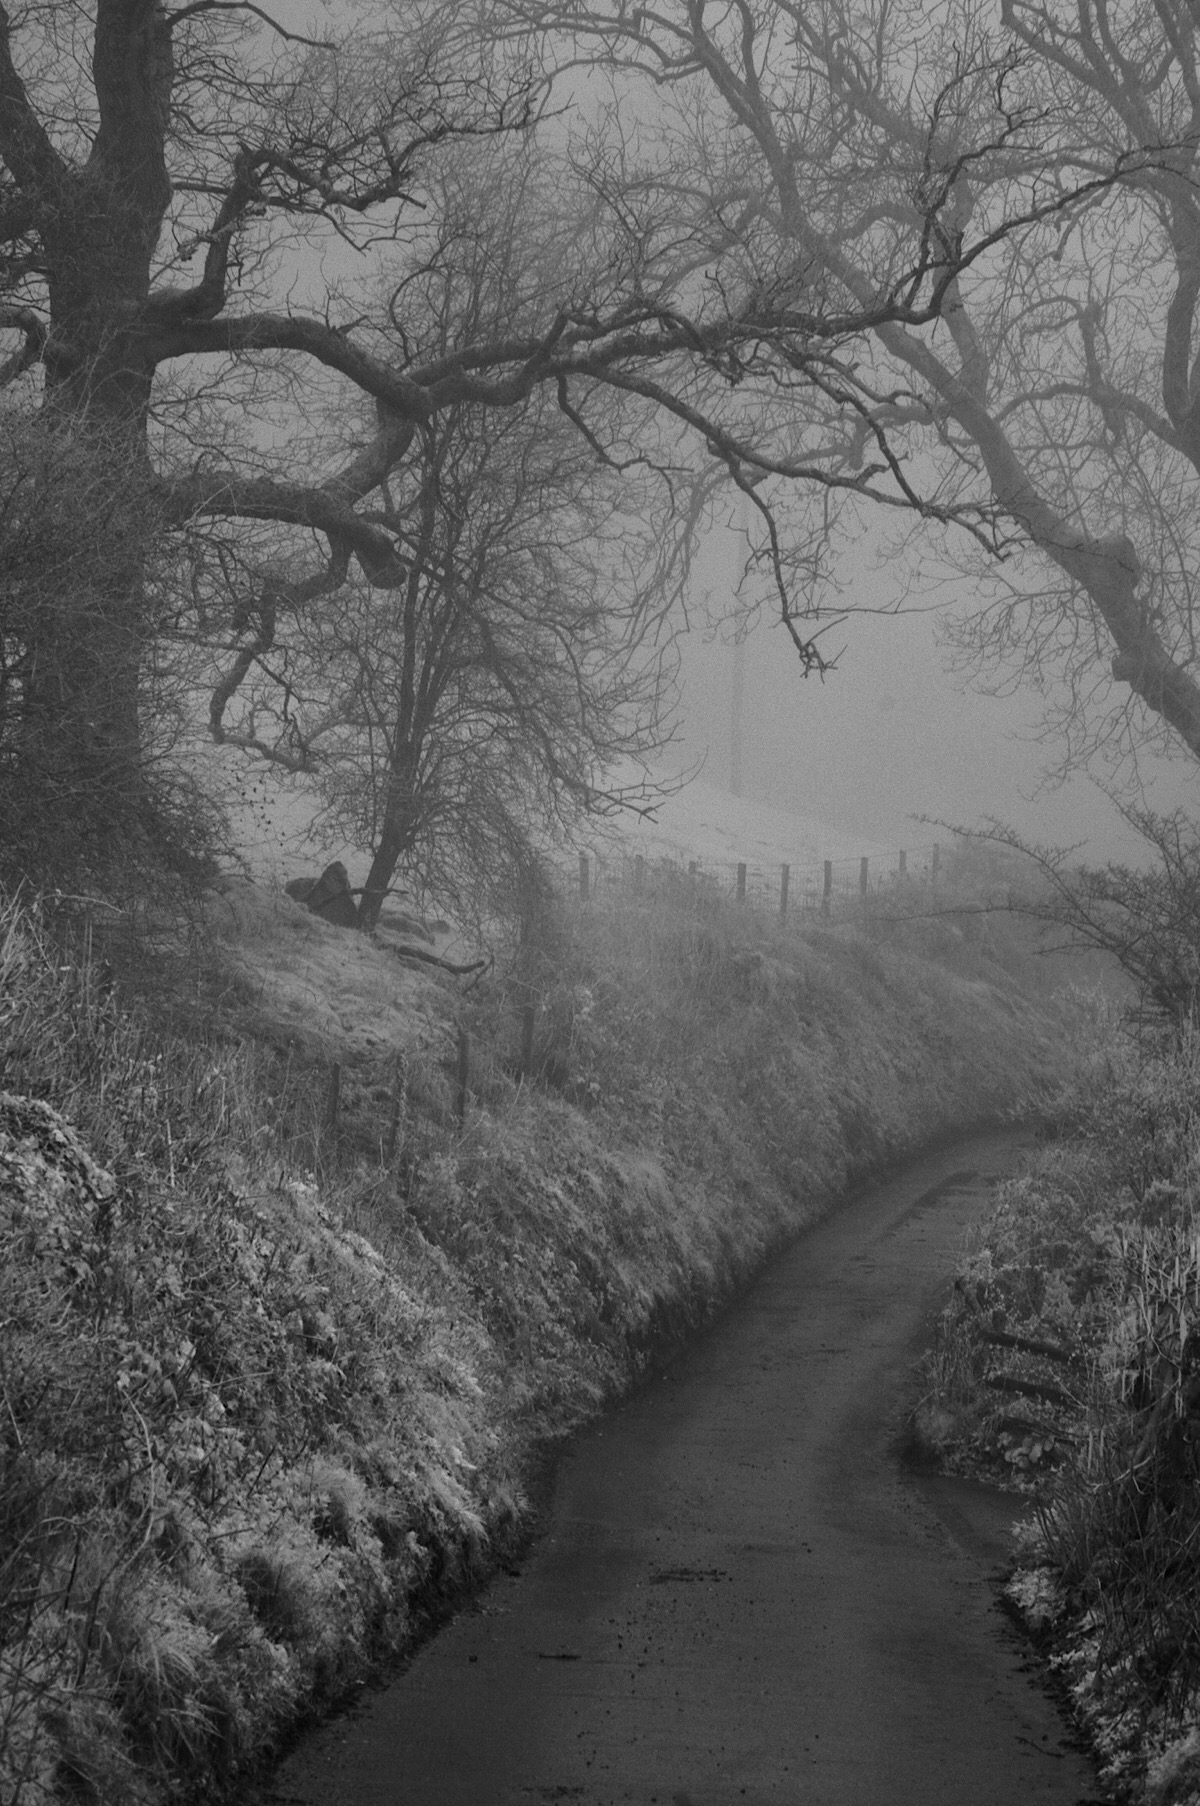 Welsh Fog in Infrared, a lane in the Vallies.